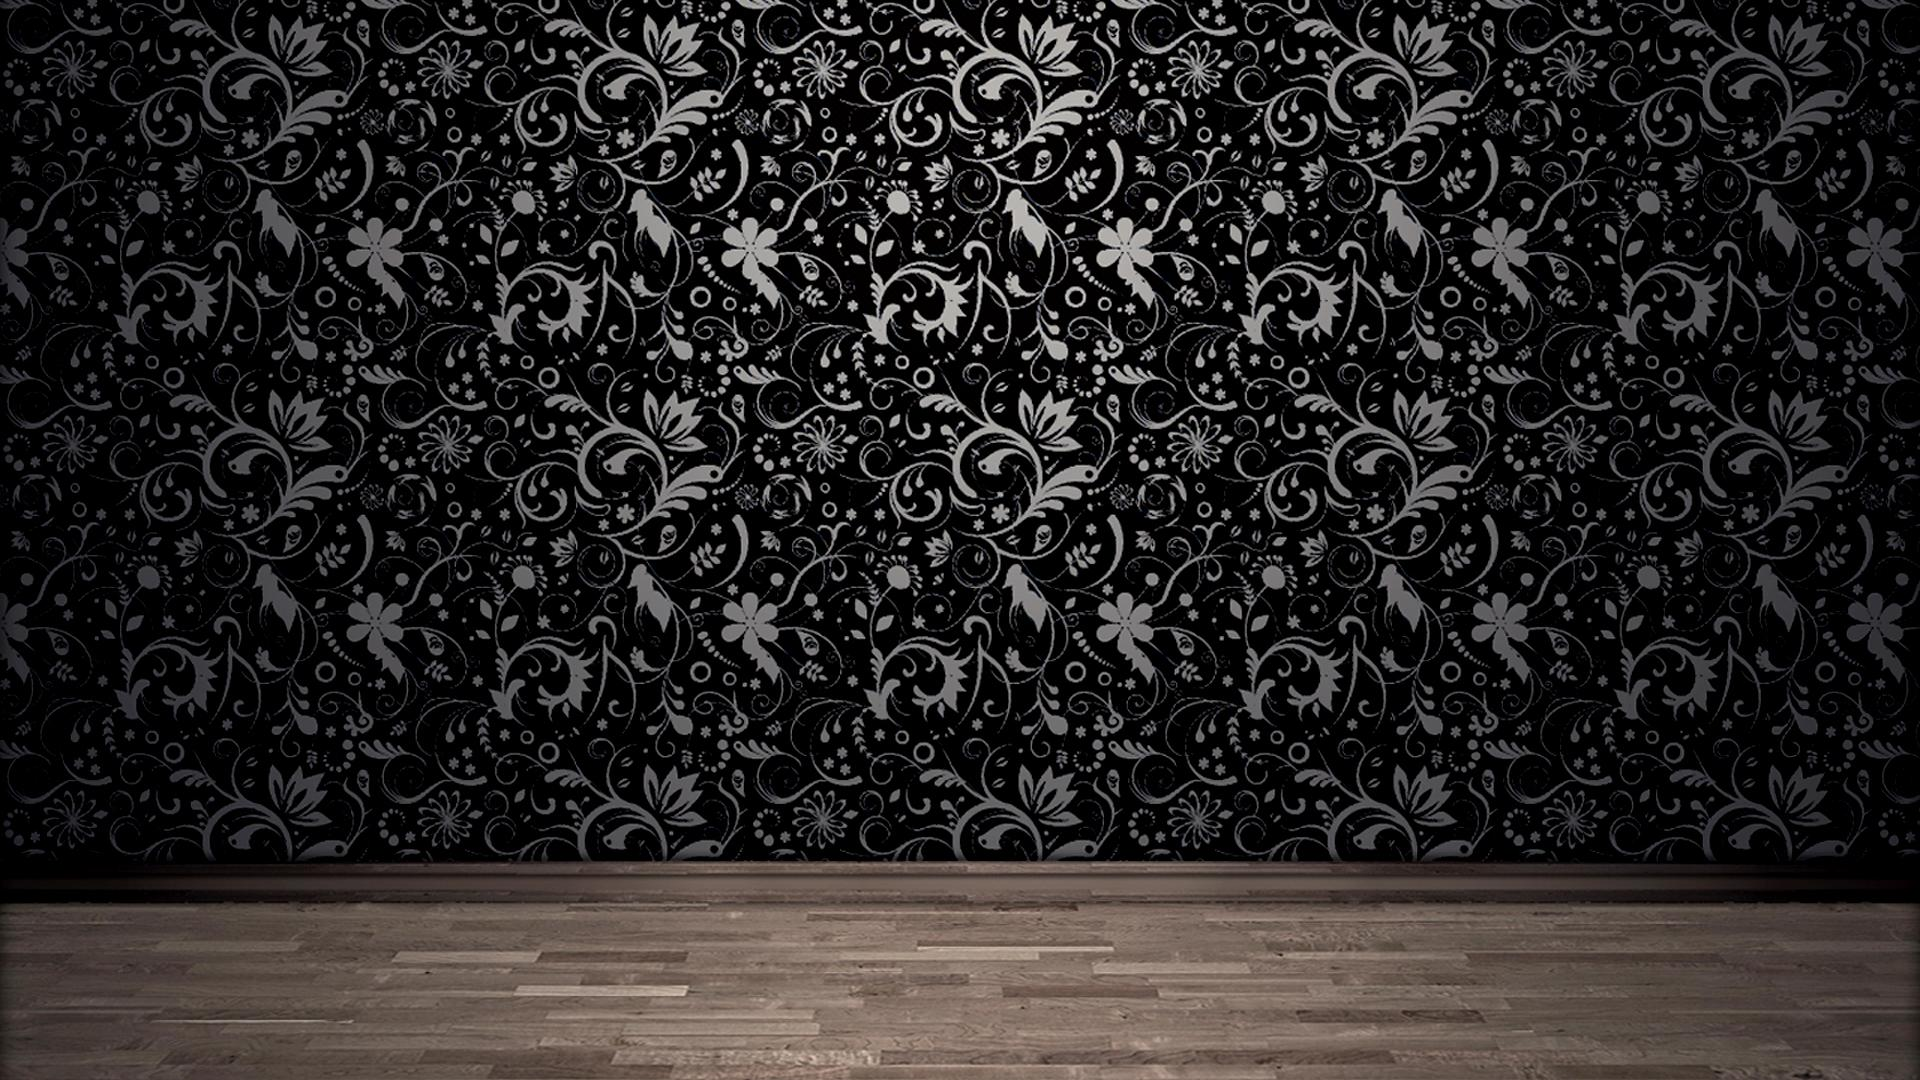 Wall Design Hd Photos : Elegant desktop wallpaper wallpapersafari